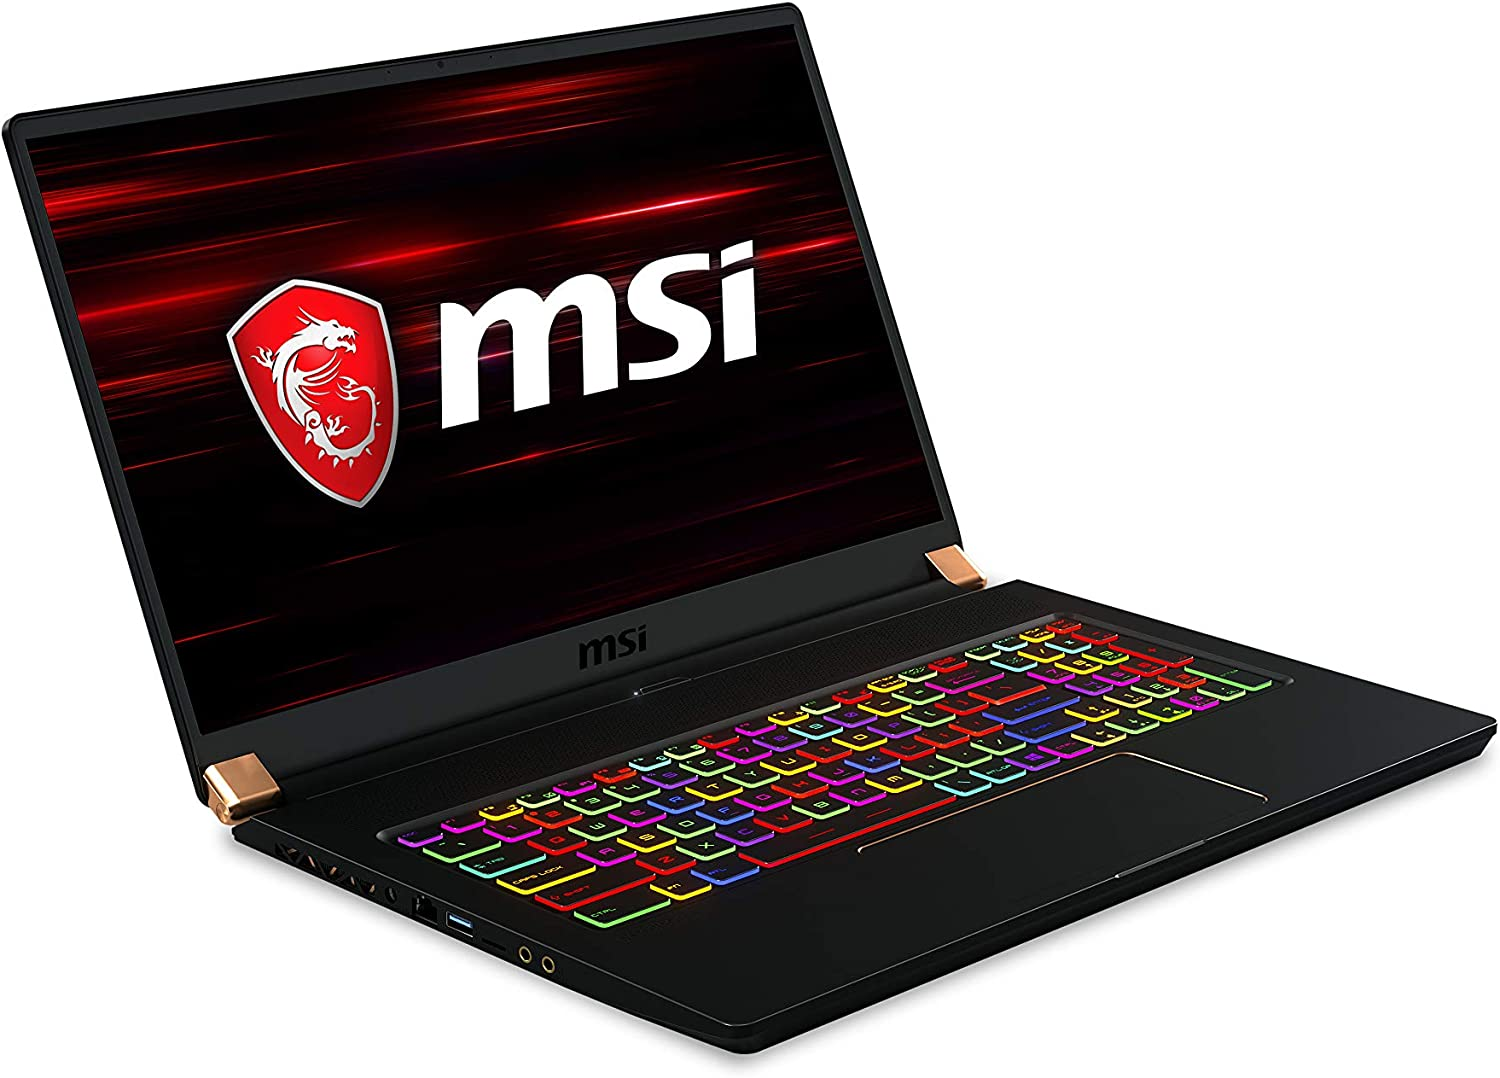 "MSI GS75 Stealth 10SGS-027 17.3"" 300Hz 3ms Ultra Thin and Light Gaming Laptop Intel Core i9-10980HK RTX 2080 Super 32GB 1TB NVMe SSD Win10PRO VR Ready"